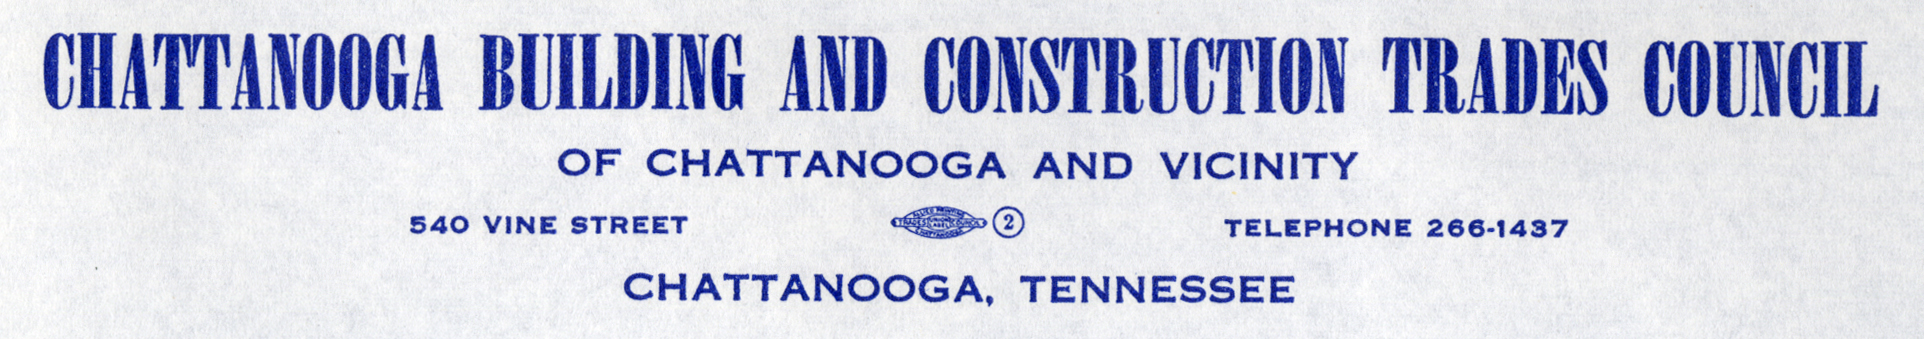 Chattanooga Build and Construction Trades Council